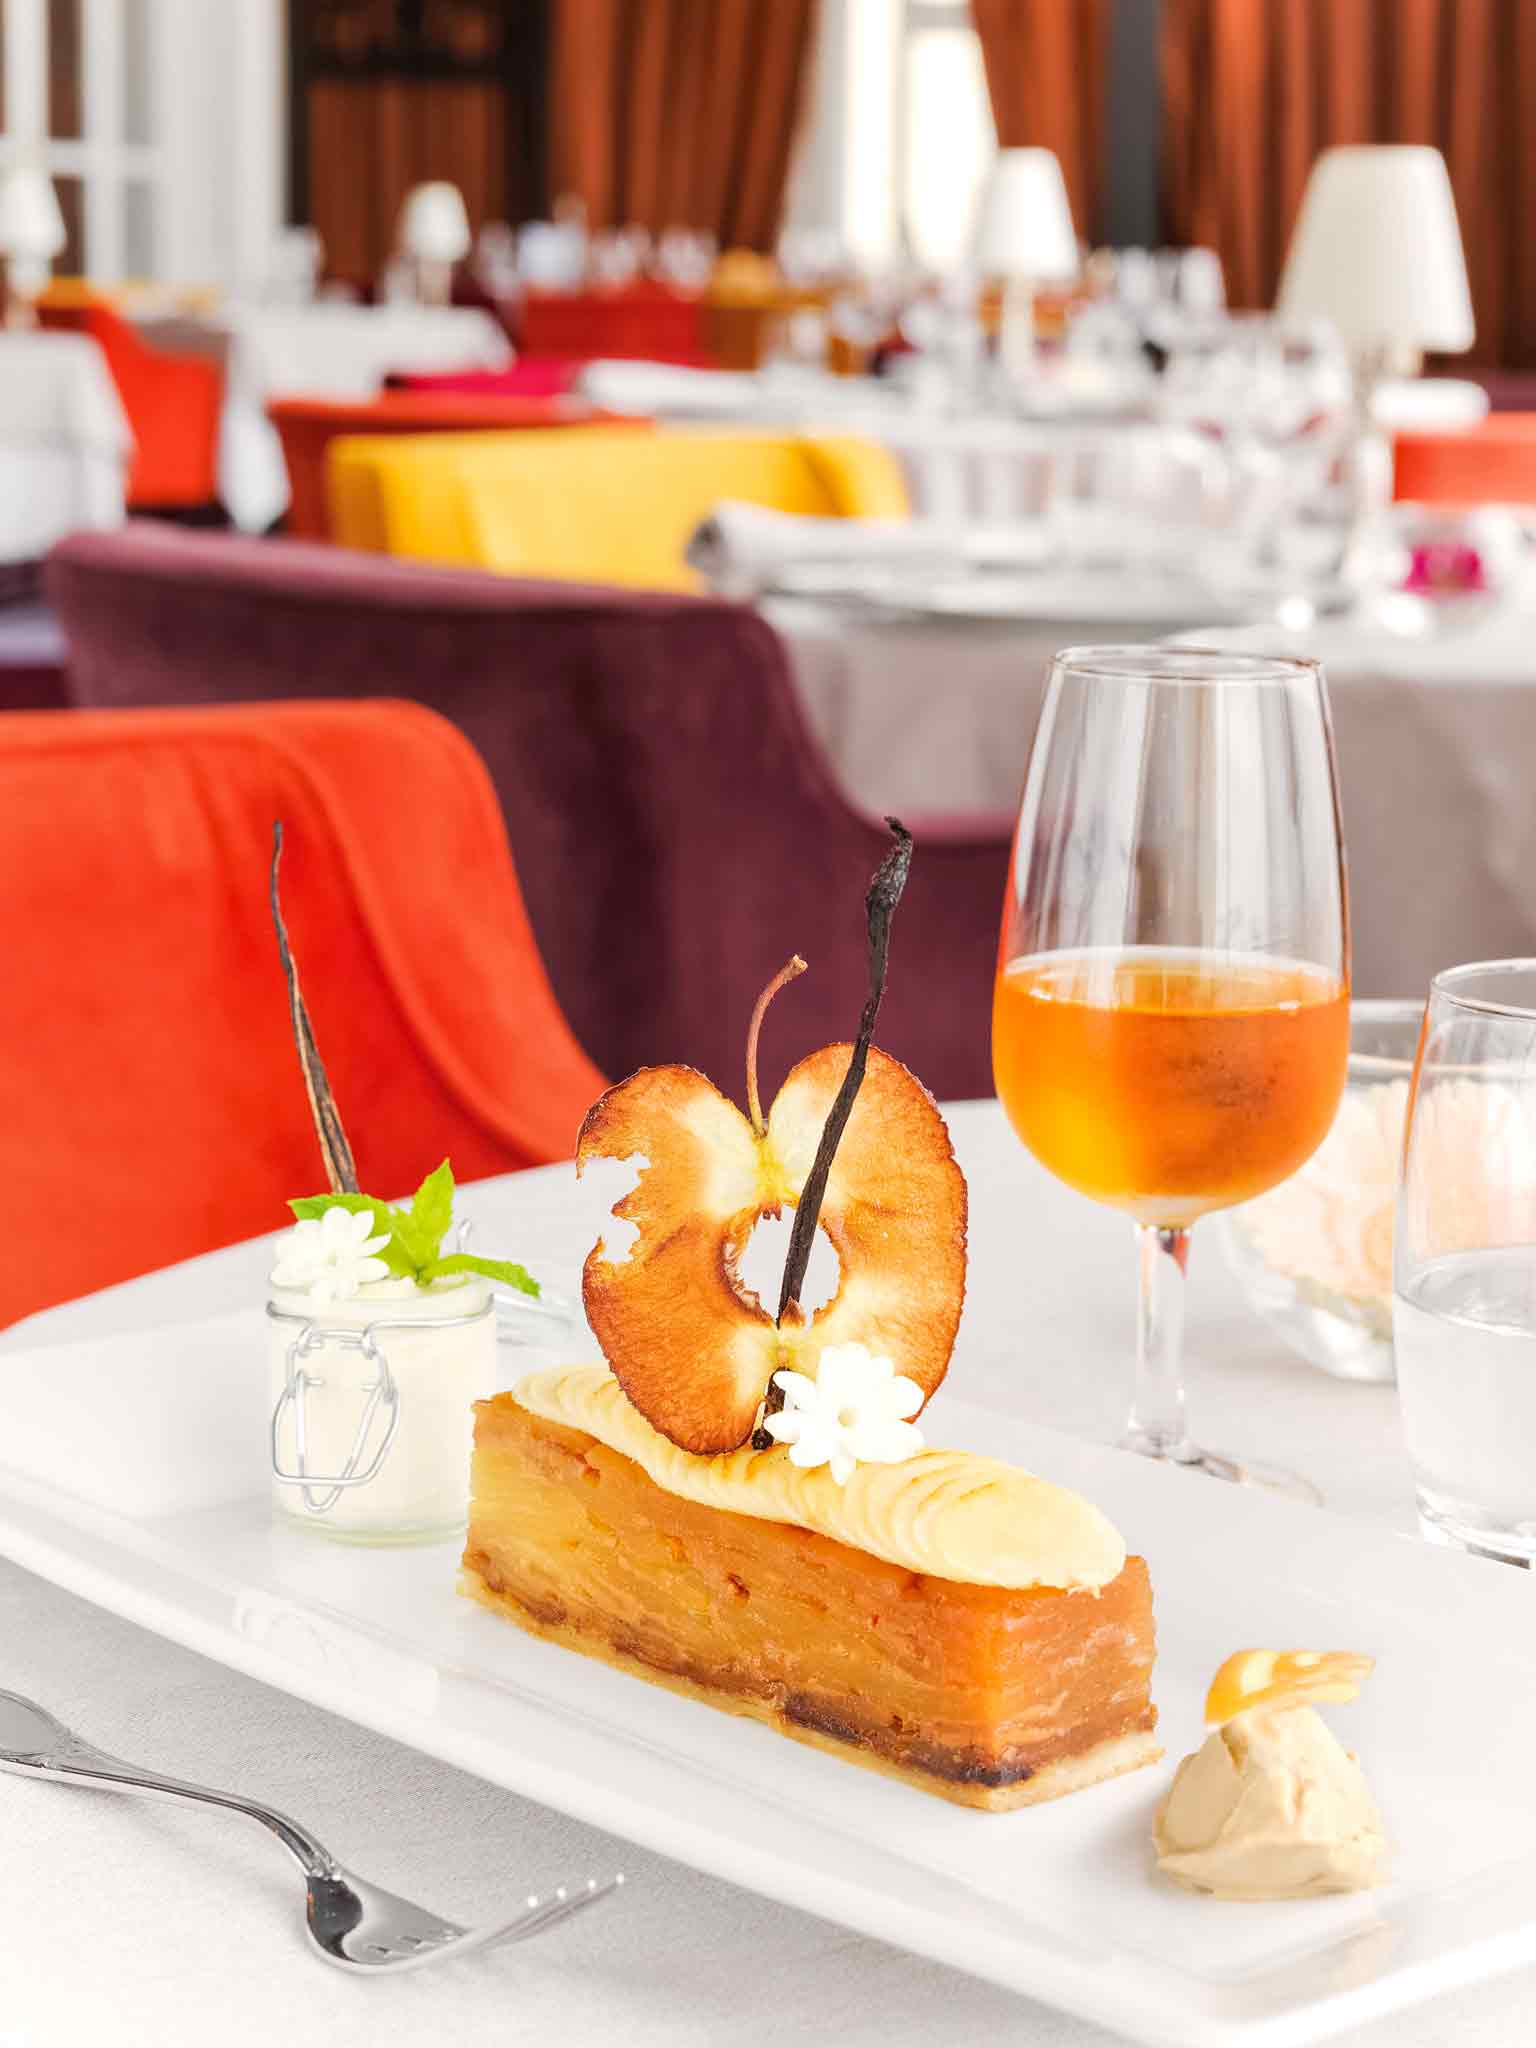 Le Grand Hotel Cabourg - MGallery Collection Gastronomie